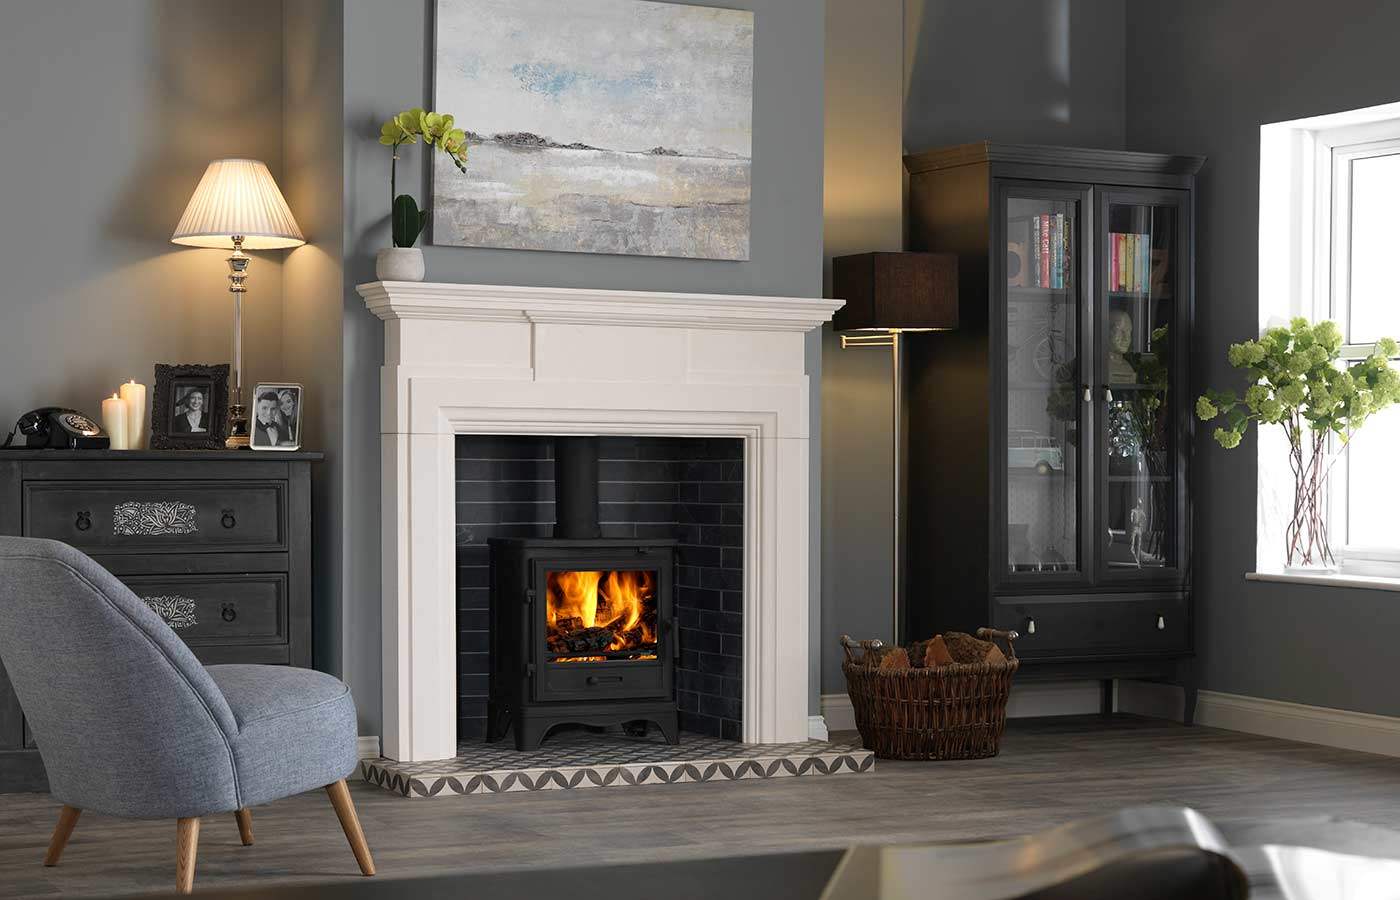 Hadley Mantle with Black Bassington Stove